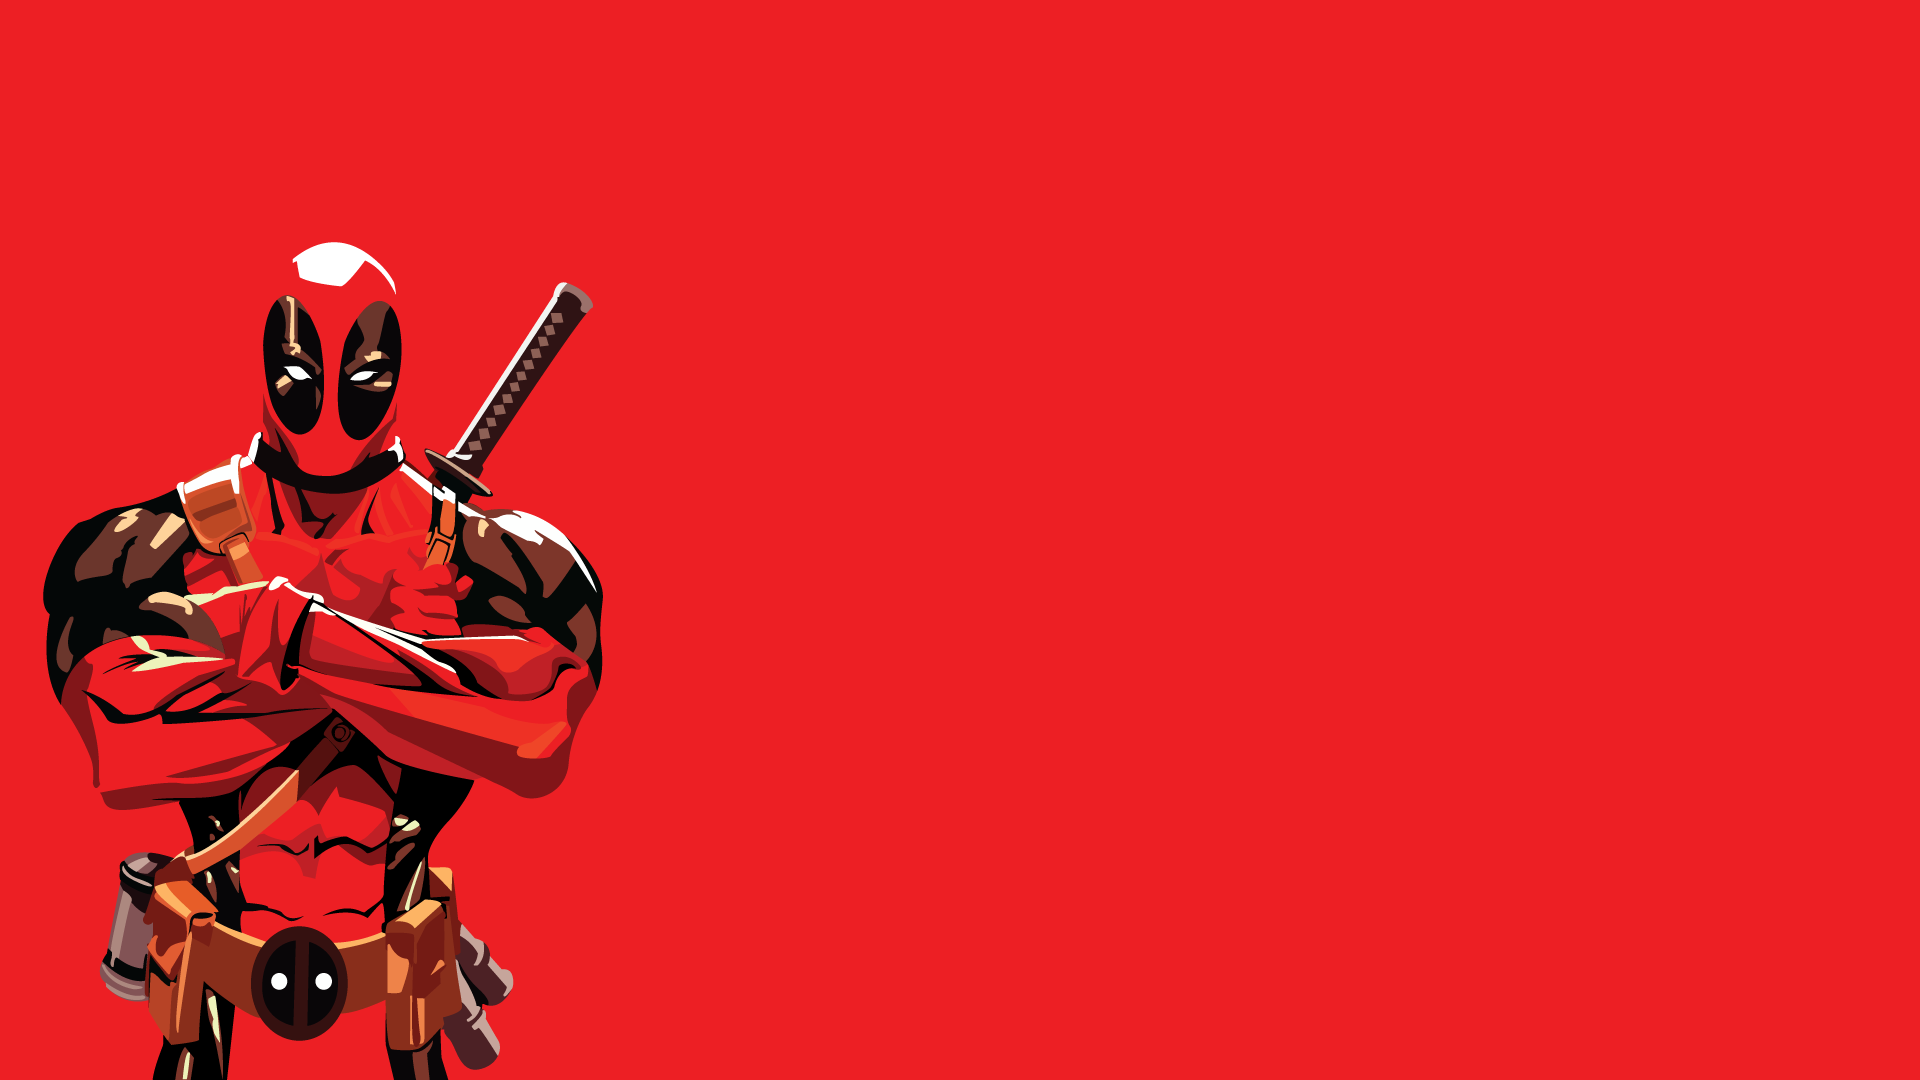 deadpool wallpaper hd 1080p - photo #27